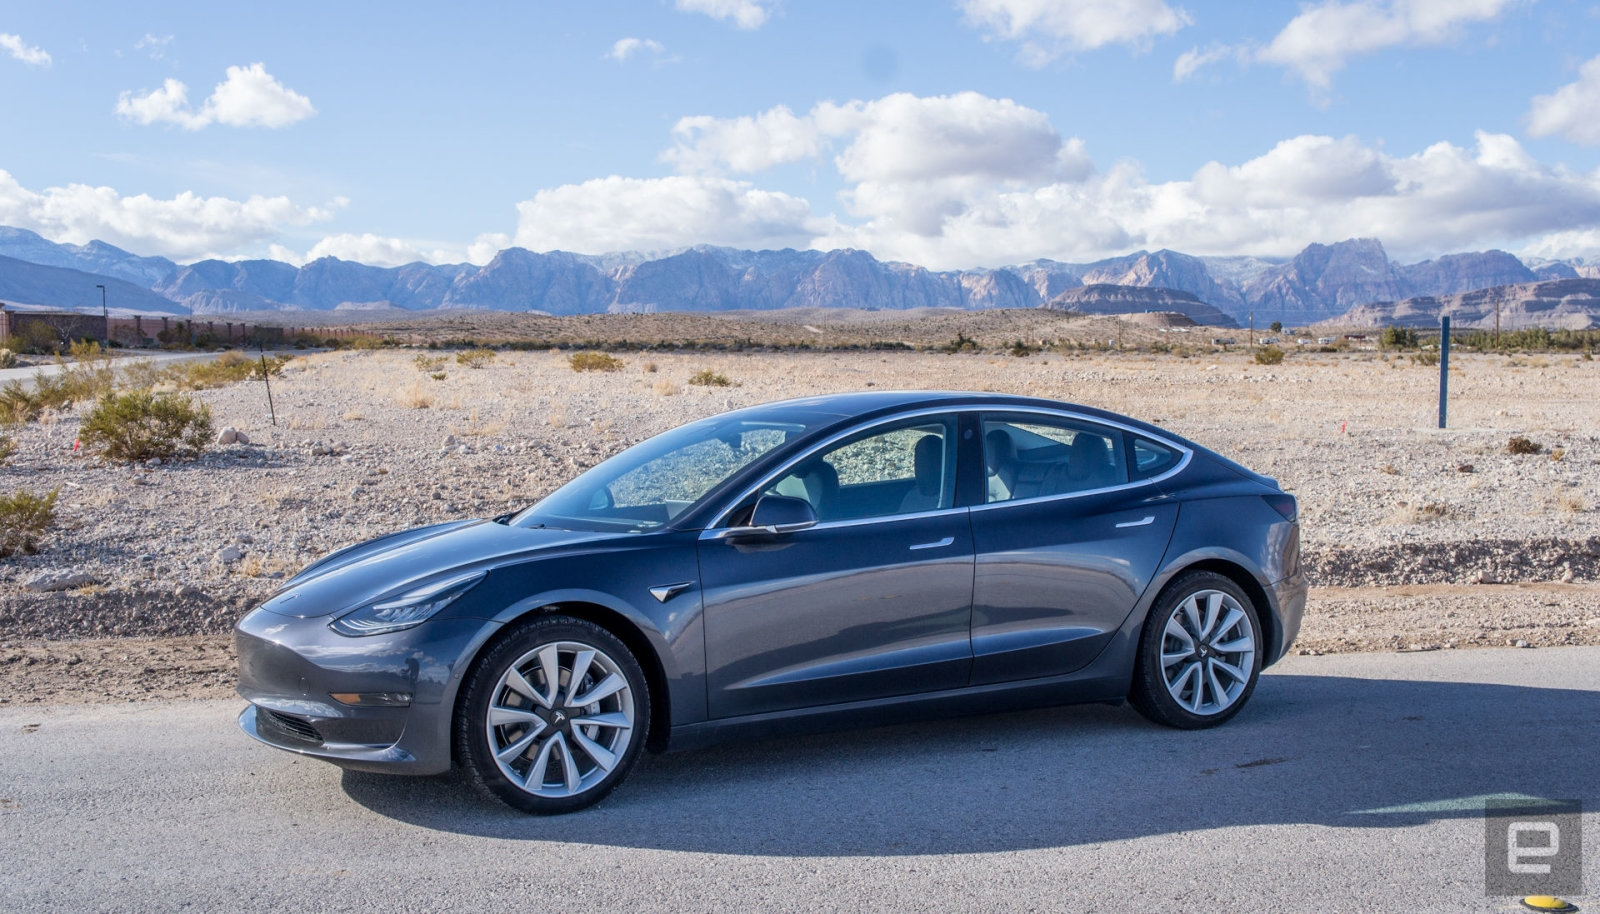 Tesla's $35,000 Model 3 is only available as a special order | DeviceDaily.com